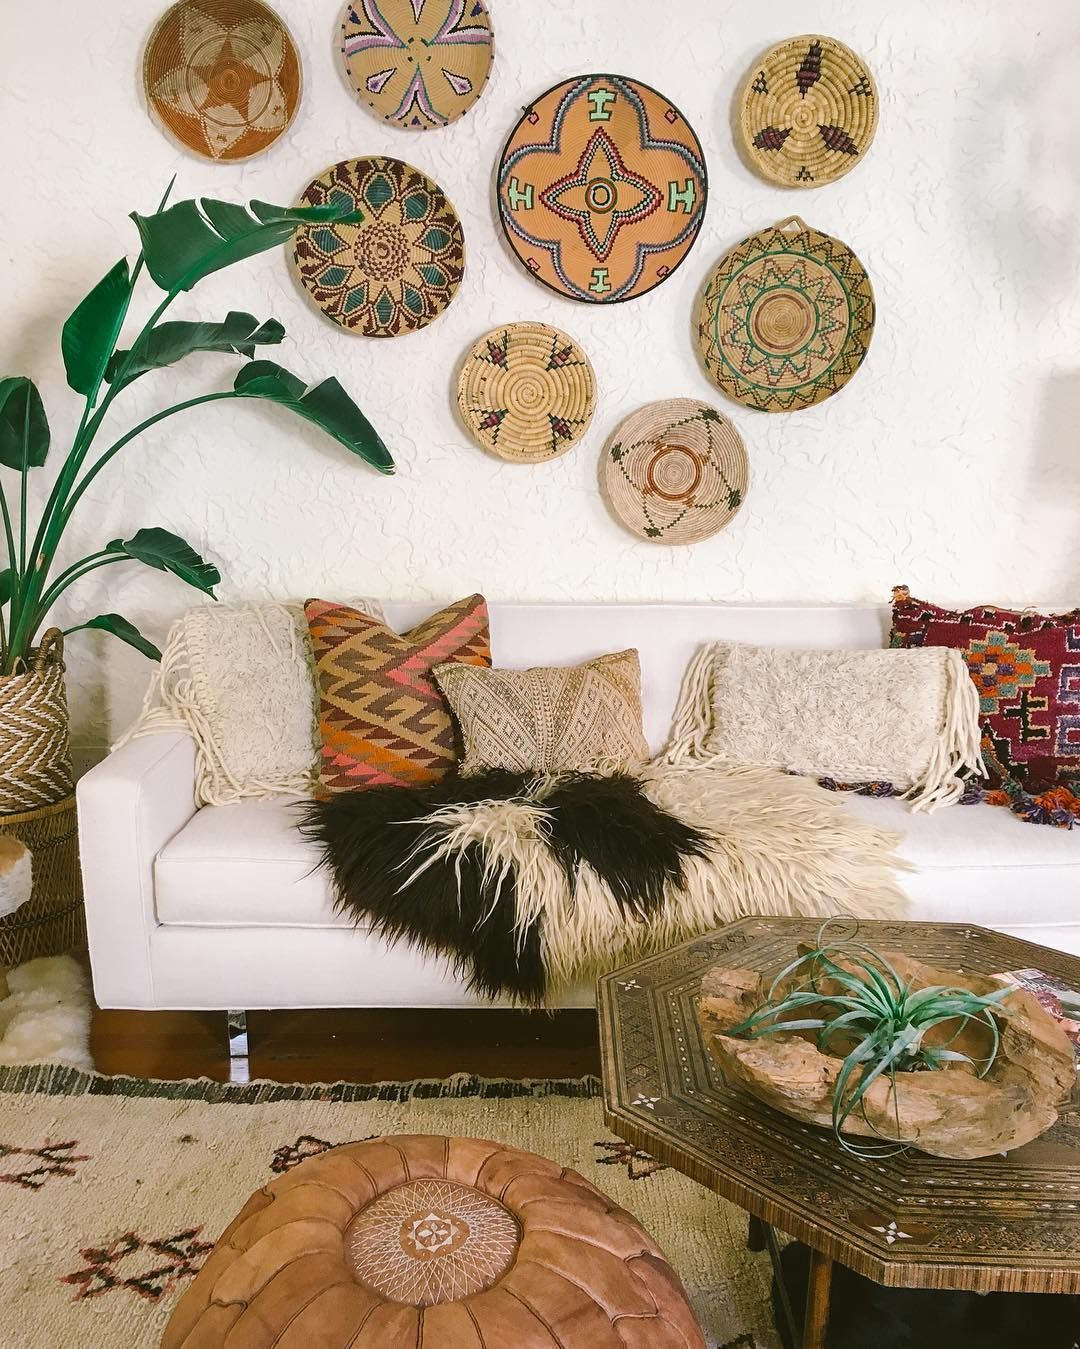 Bringing African and Moroccan flavors to boho